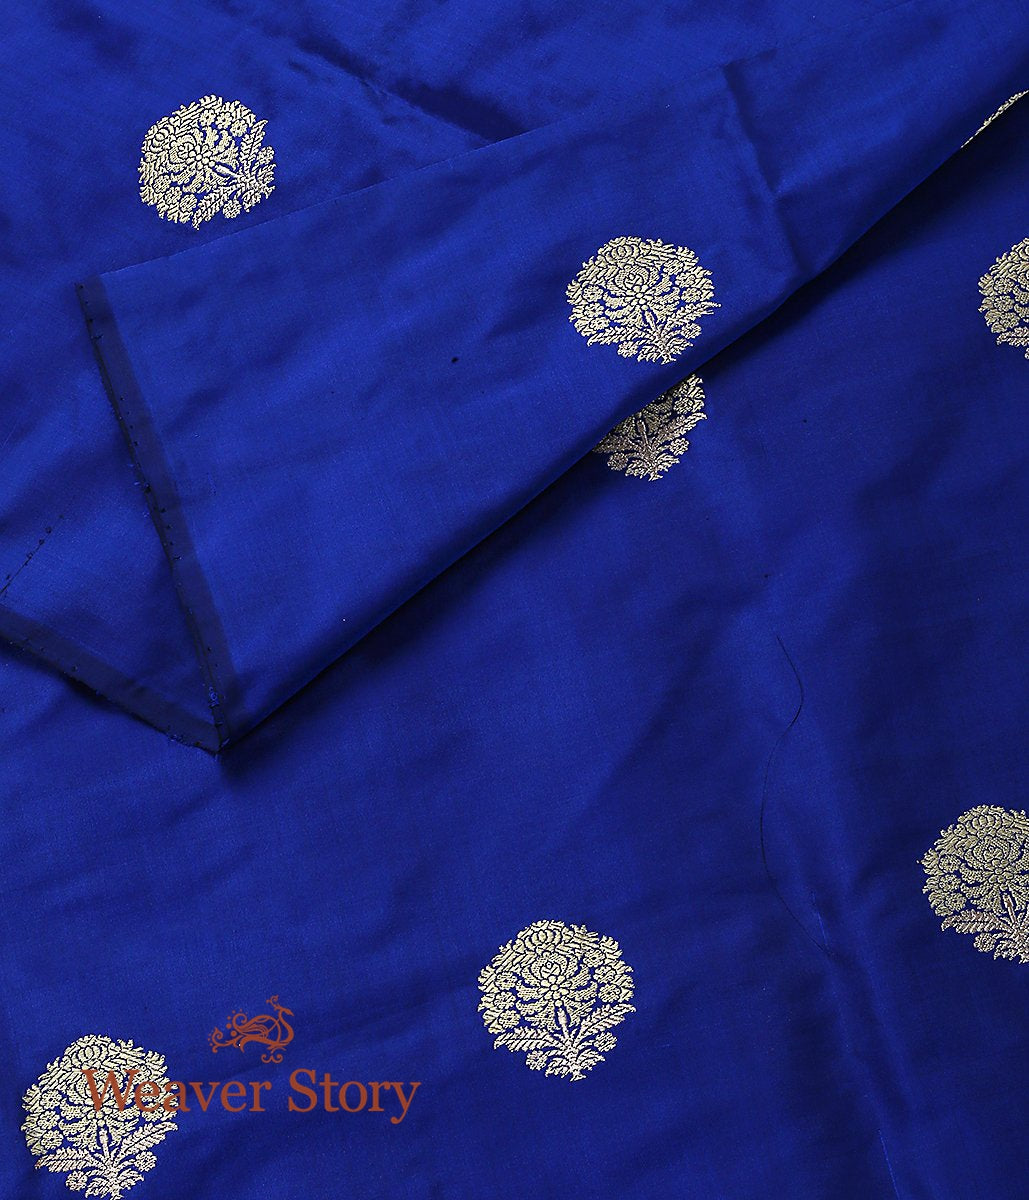 Handwoven Royal Blue Floral Booti Fabric